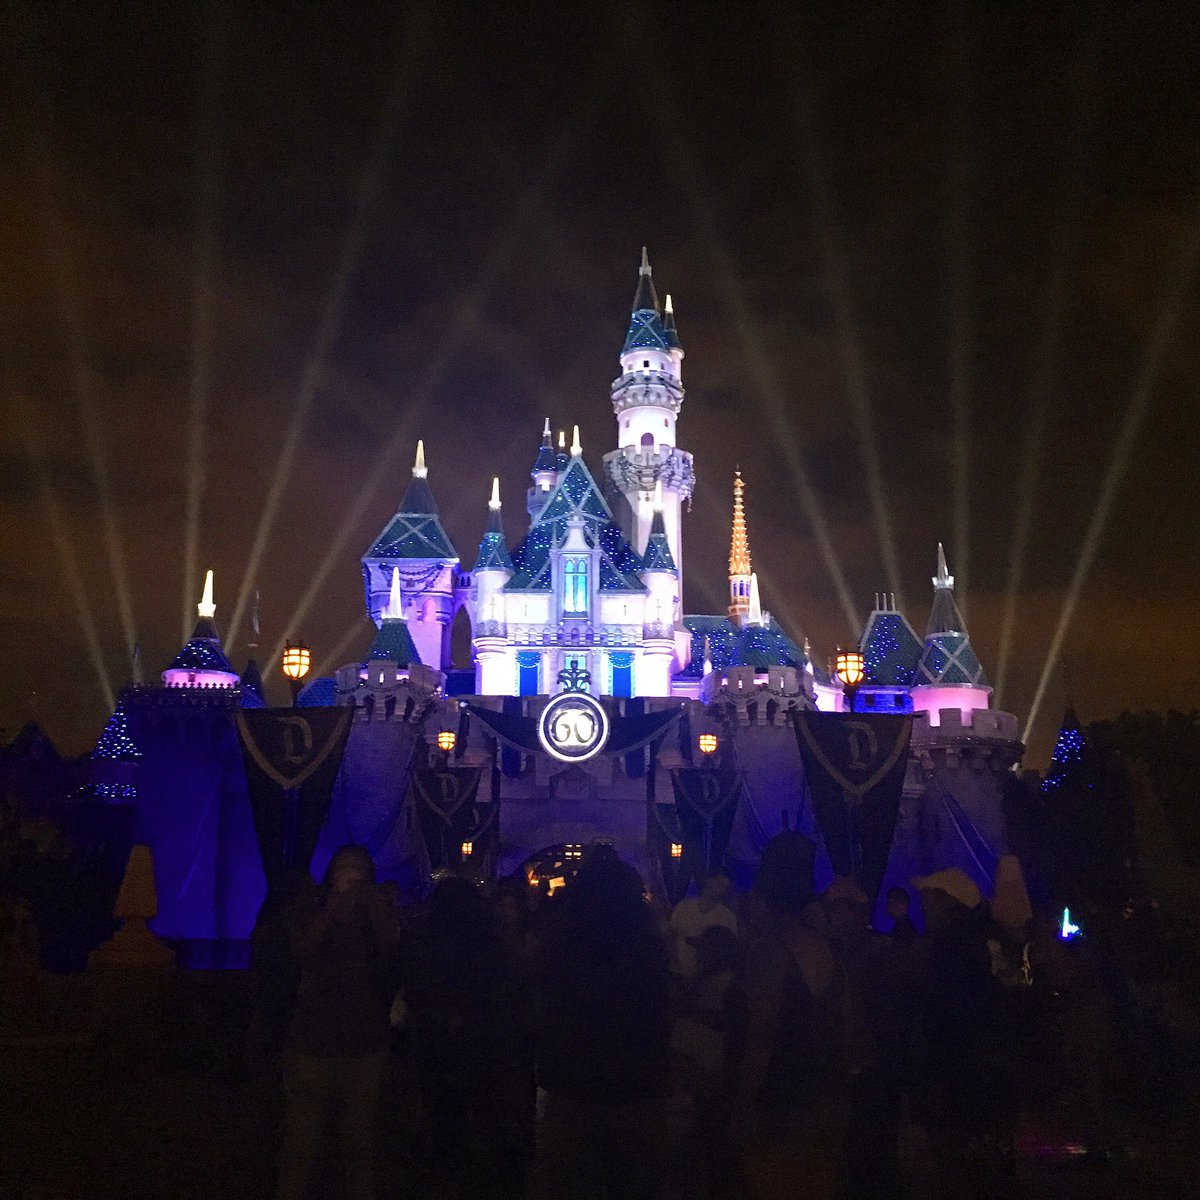 Summer at The Disneyland Resort - The iconic Sleeping Beauty Castle in Fantasyland all lit up at night